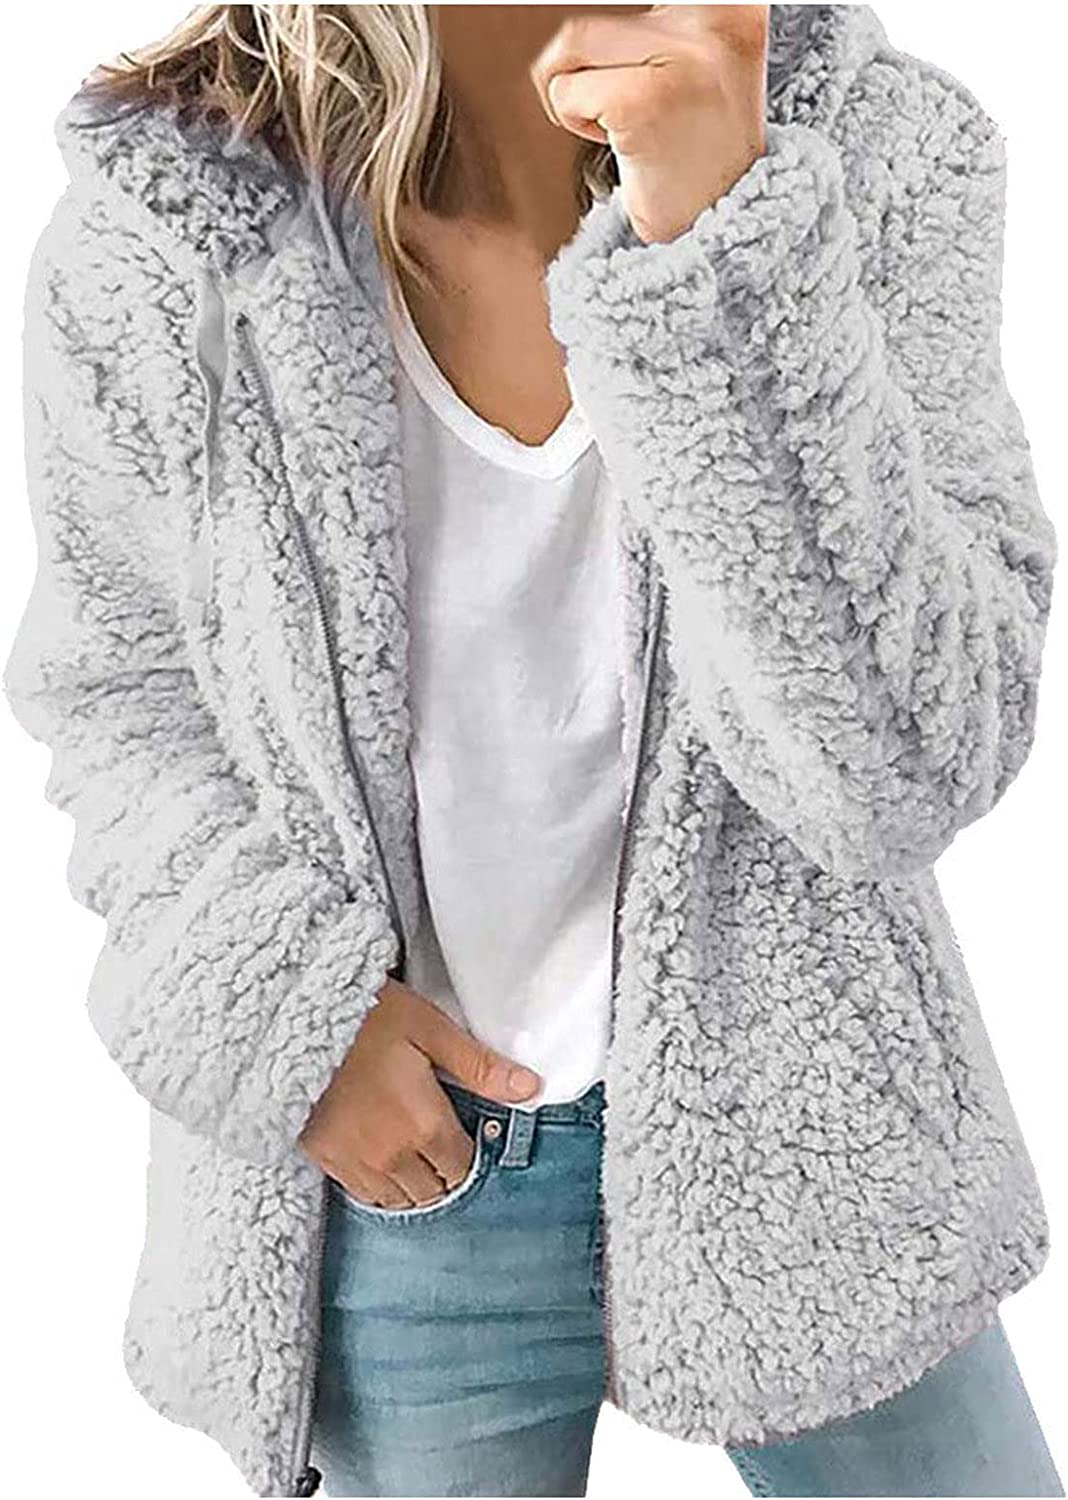 VonVonCo Pullover Sweaters for Women Winter Long Sleeve Coat with Hat Cardigan Sweater Casual Jacket Coat